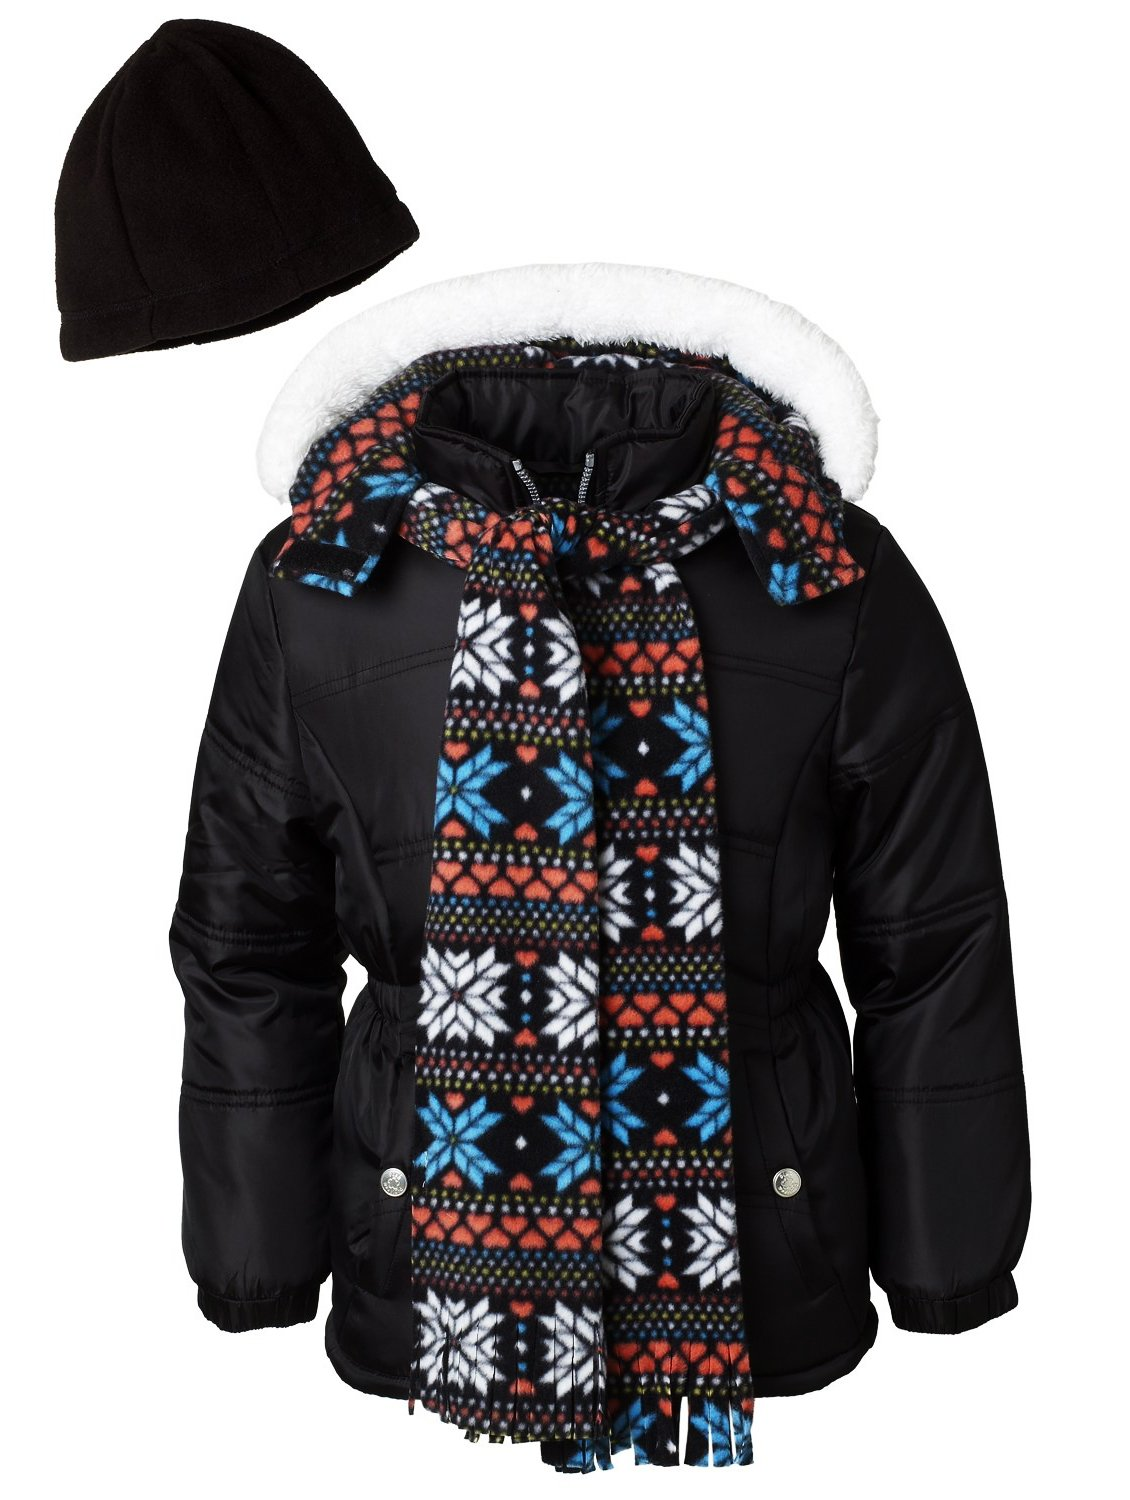 Pink Platinum Little Girls Puffer Jacket Set with Hat & Scarf Snowflake Print, Black, 3T